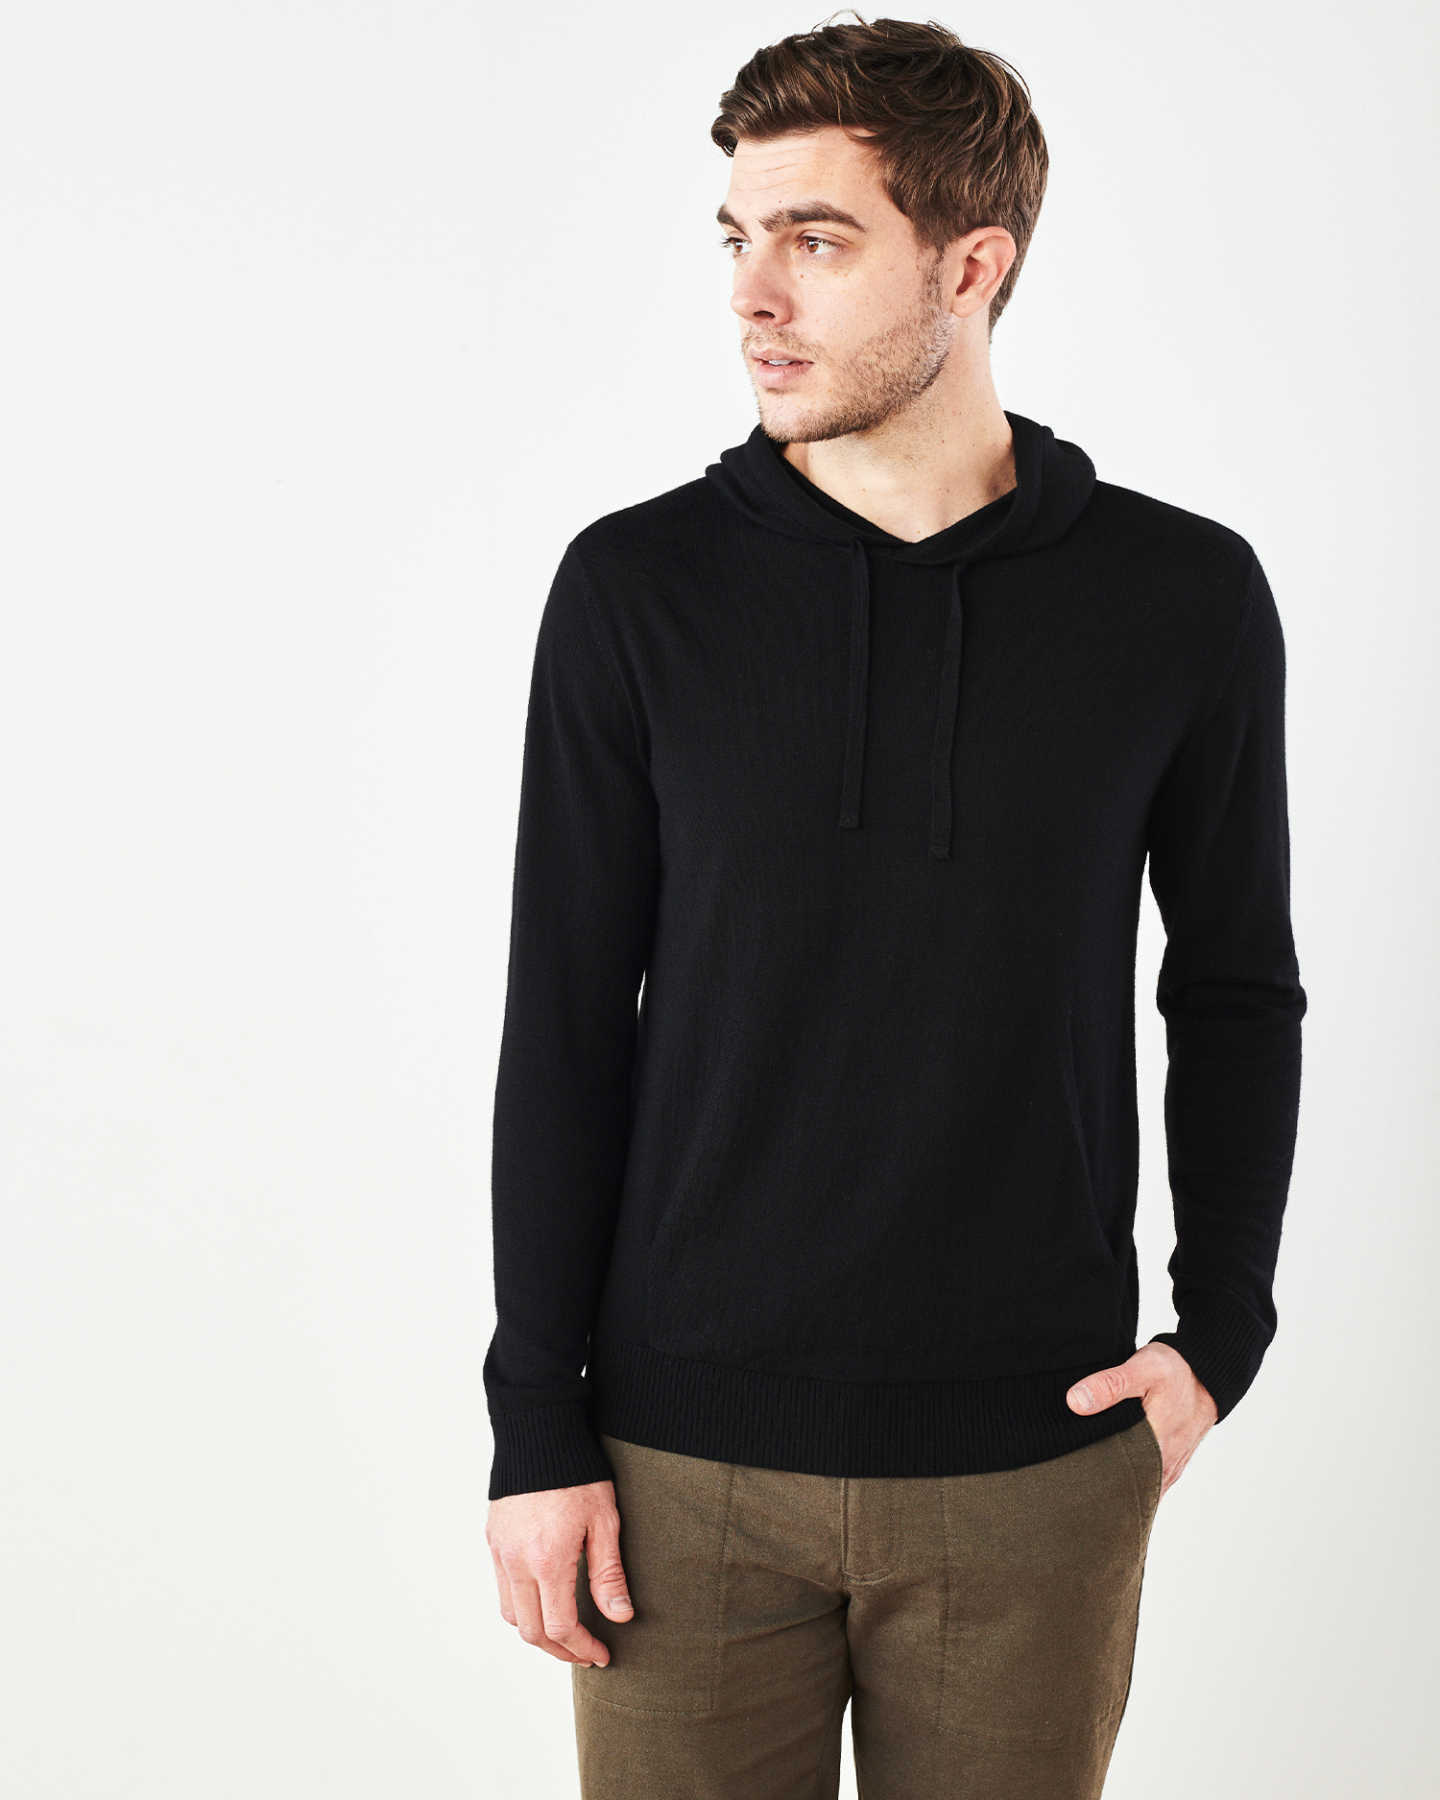 Man wearing merino wool hoodie in black looking right